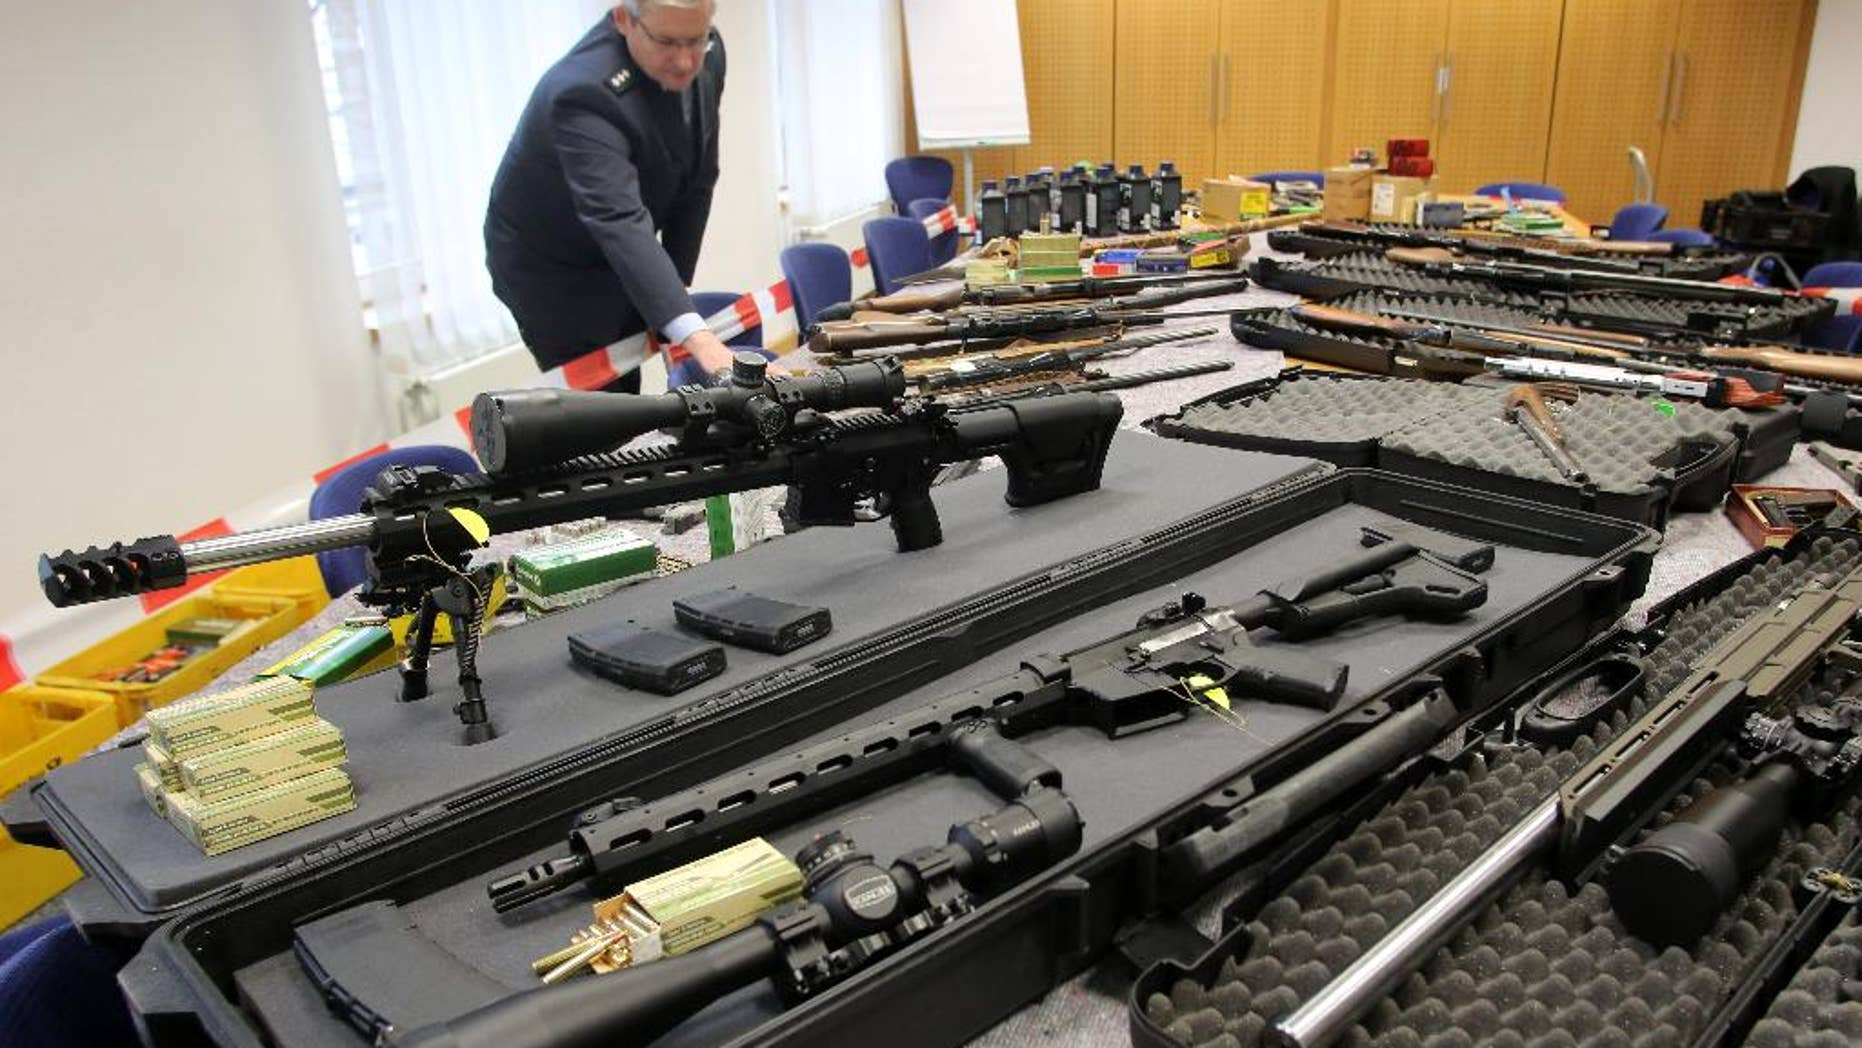 Police display weapons seized already on Nov. 9,  2016  in Solingen , Germany from the radical rightwing 'Reichsbuerger' group, in Wuppertal, Germany,  Thursday Nov. 17, 2016.  The weapons   had previously been in the possession of two members of the anti-government  organization. (RolandWeihrauch/dpa vis AP)